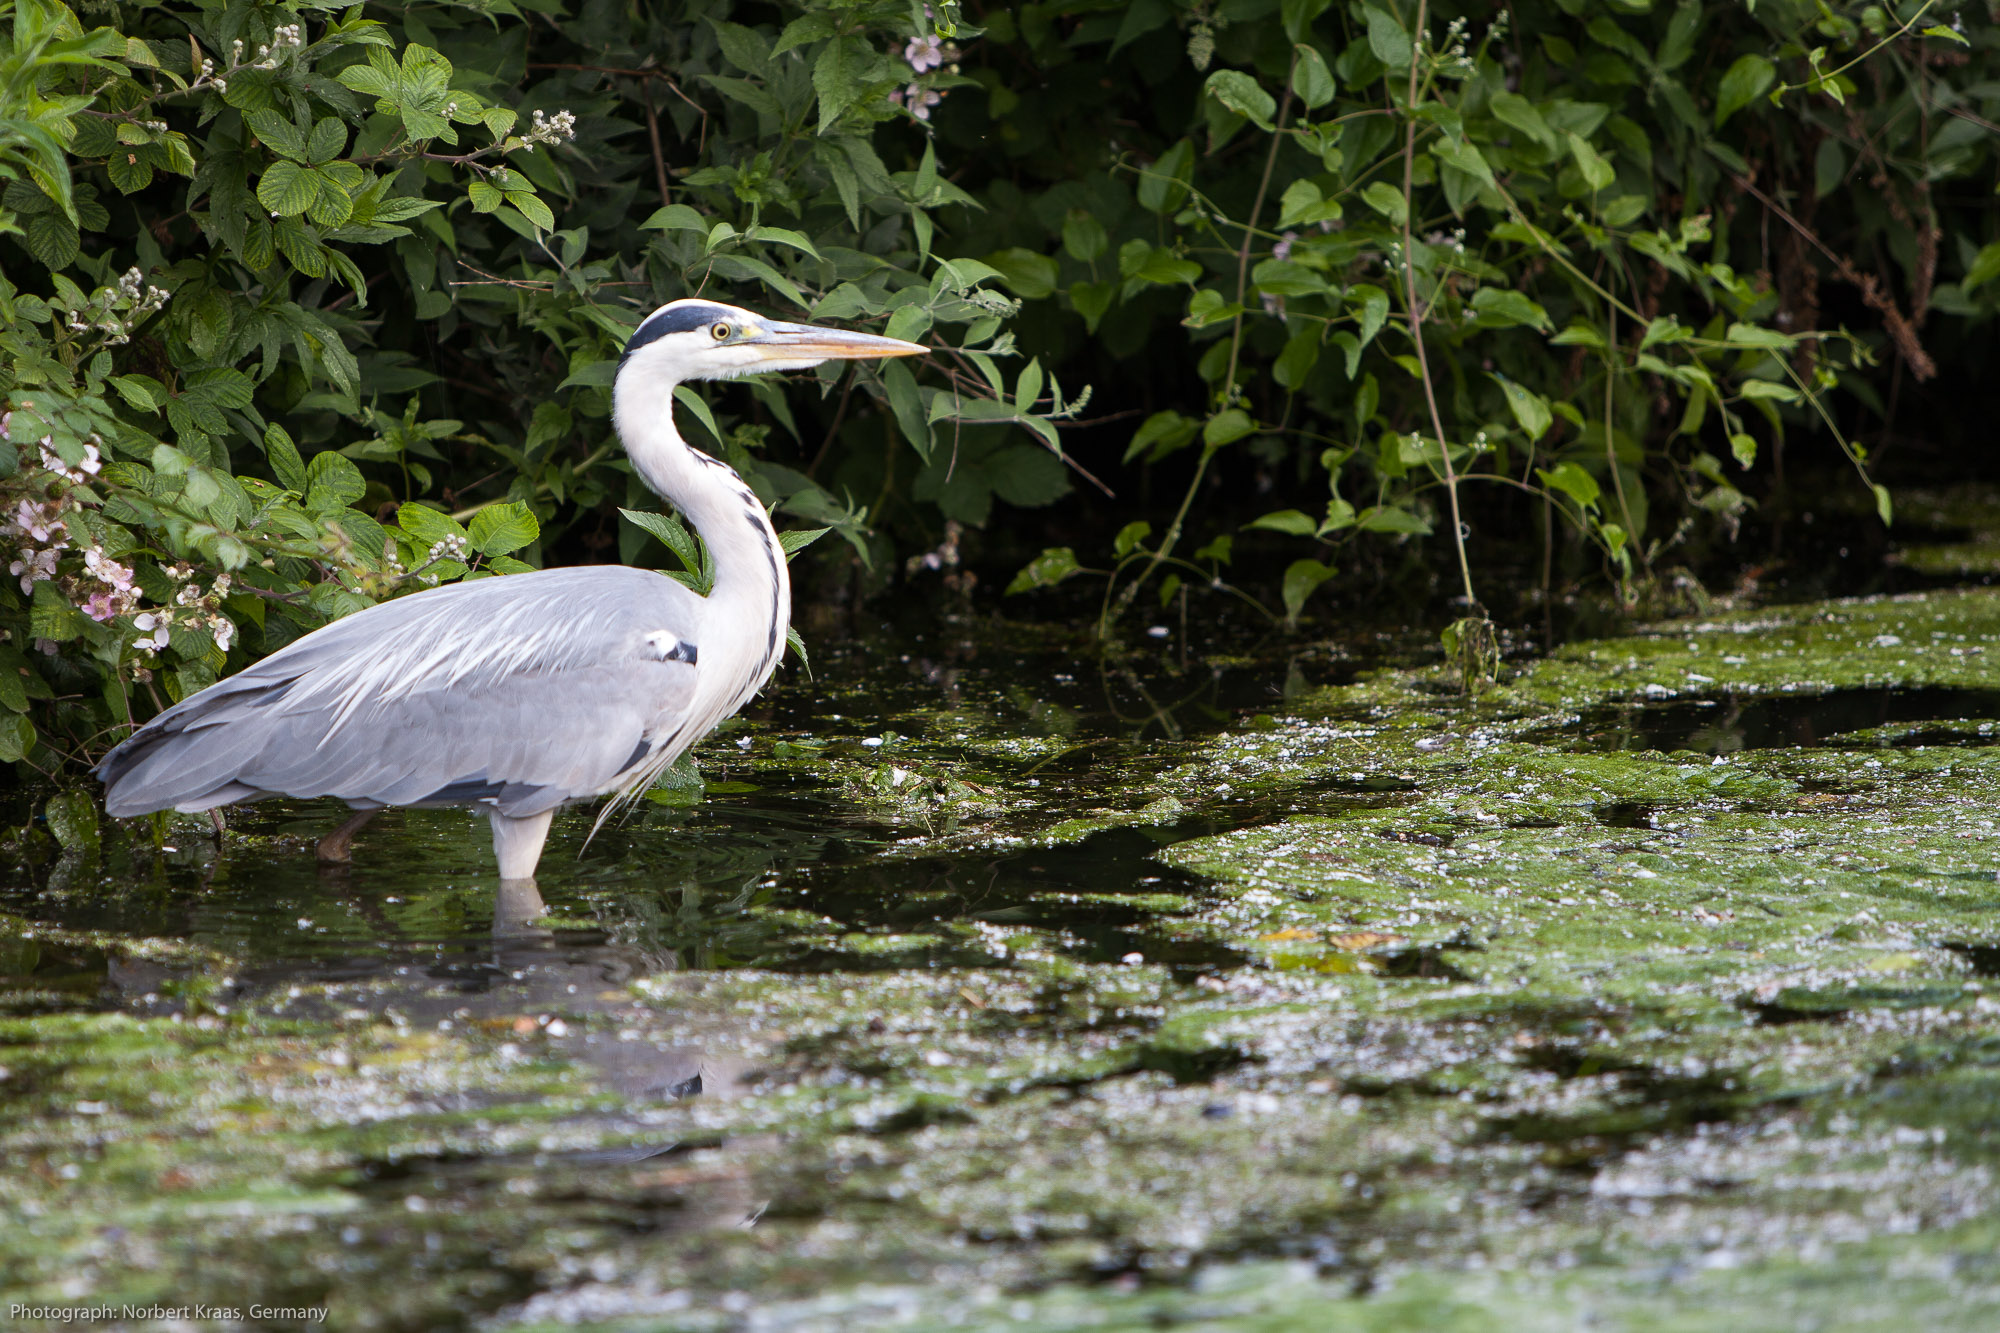 Heron on the Chichester Canal, West Sussex. Photograph: Norbert Kraas